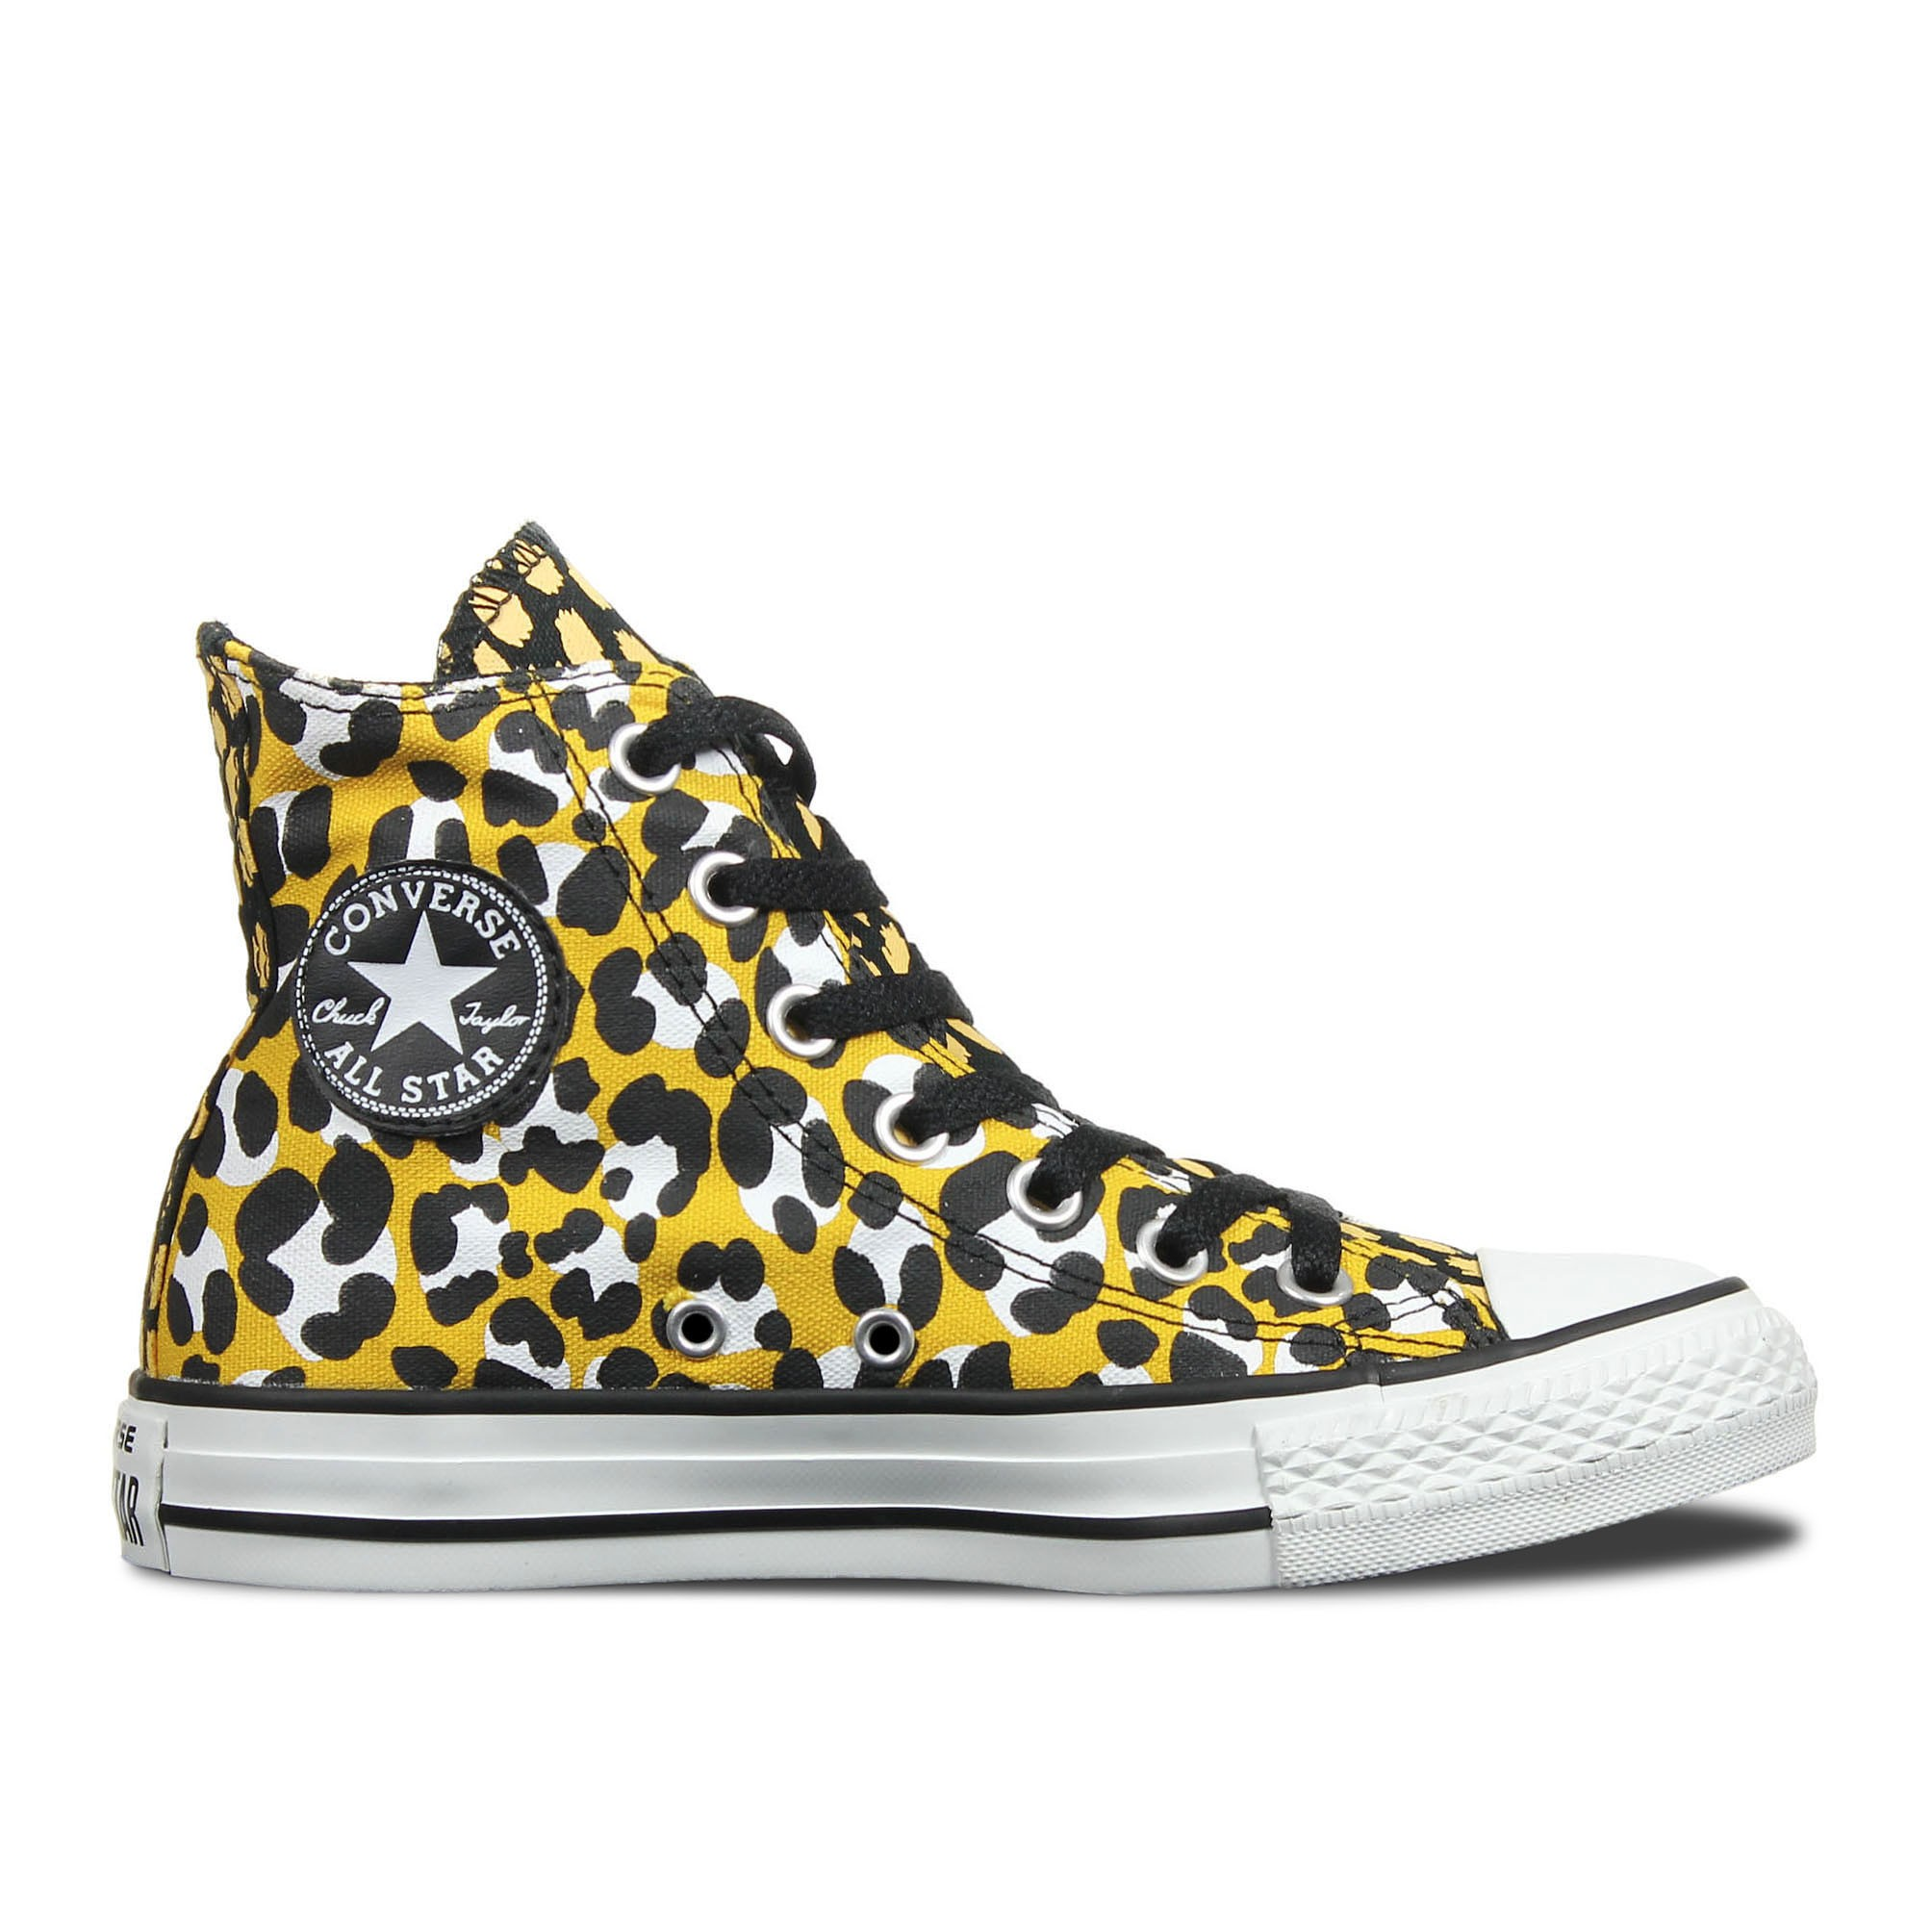 converse all star chuck taylor hi animal print schuhe. Black Bedroom Furniture Sets. Home Design Ideas